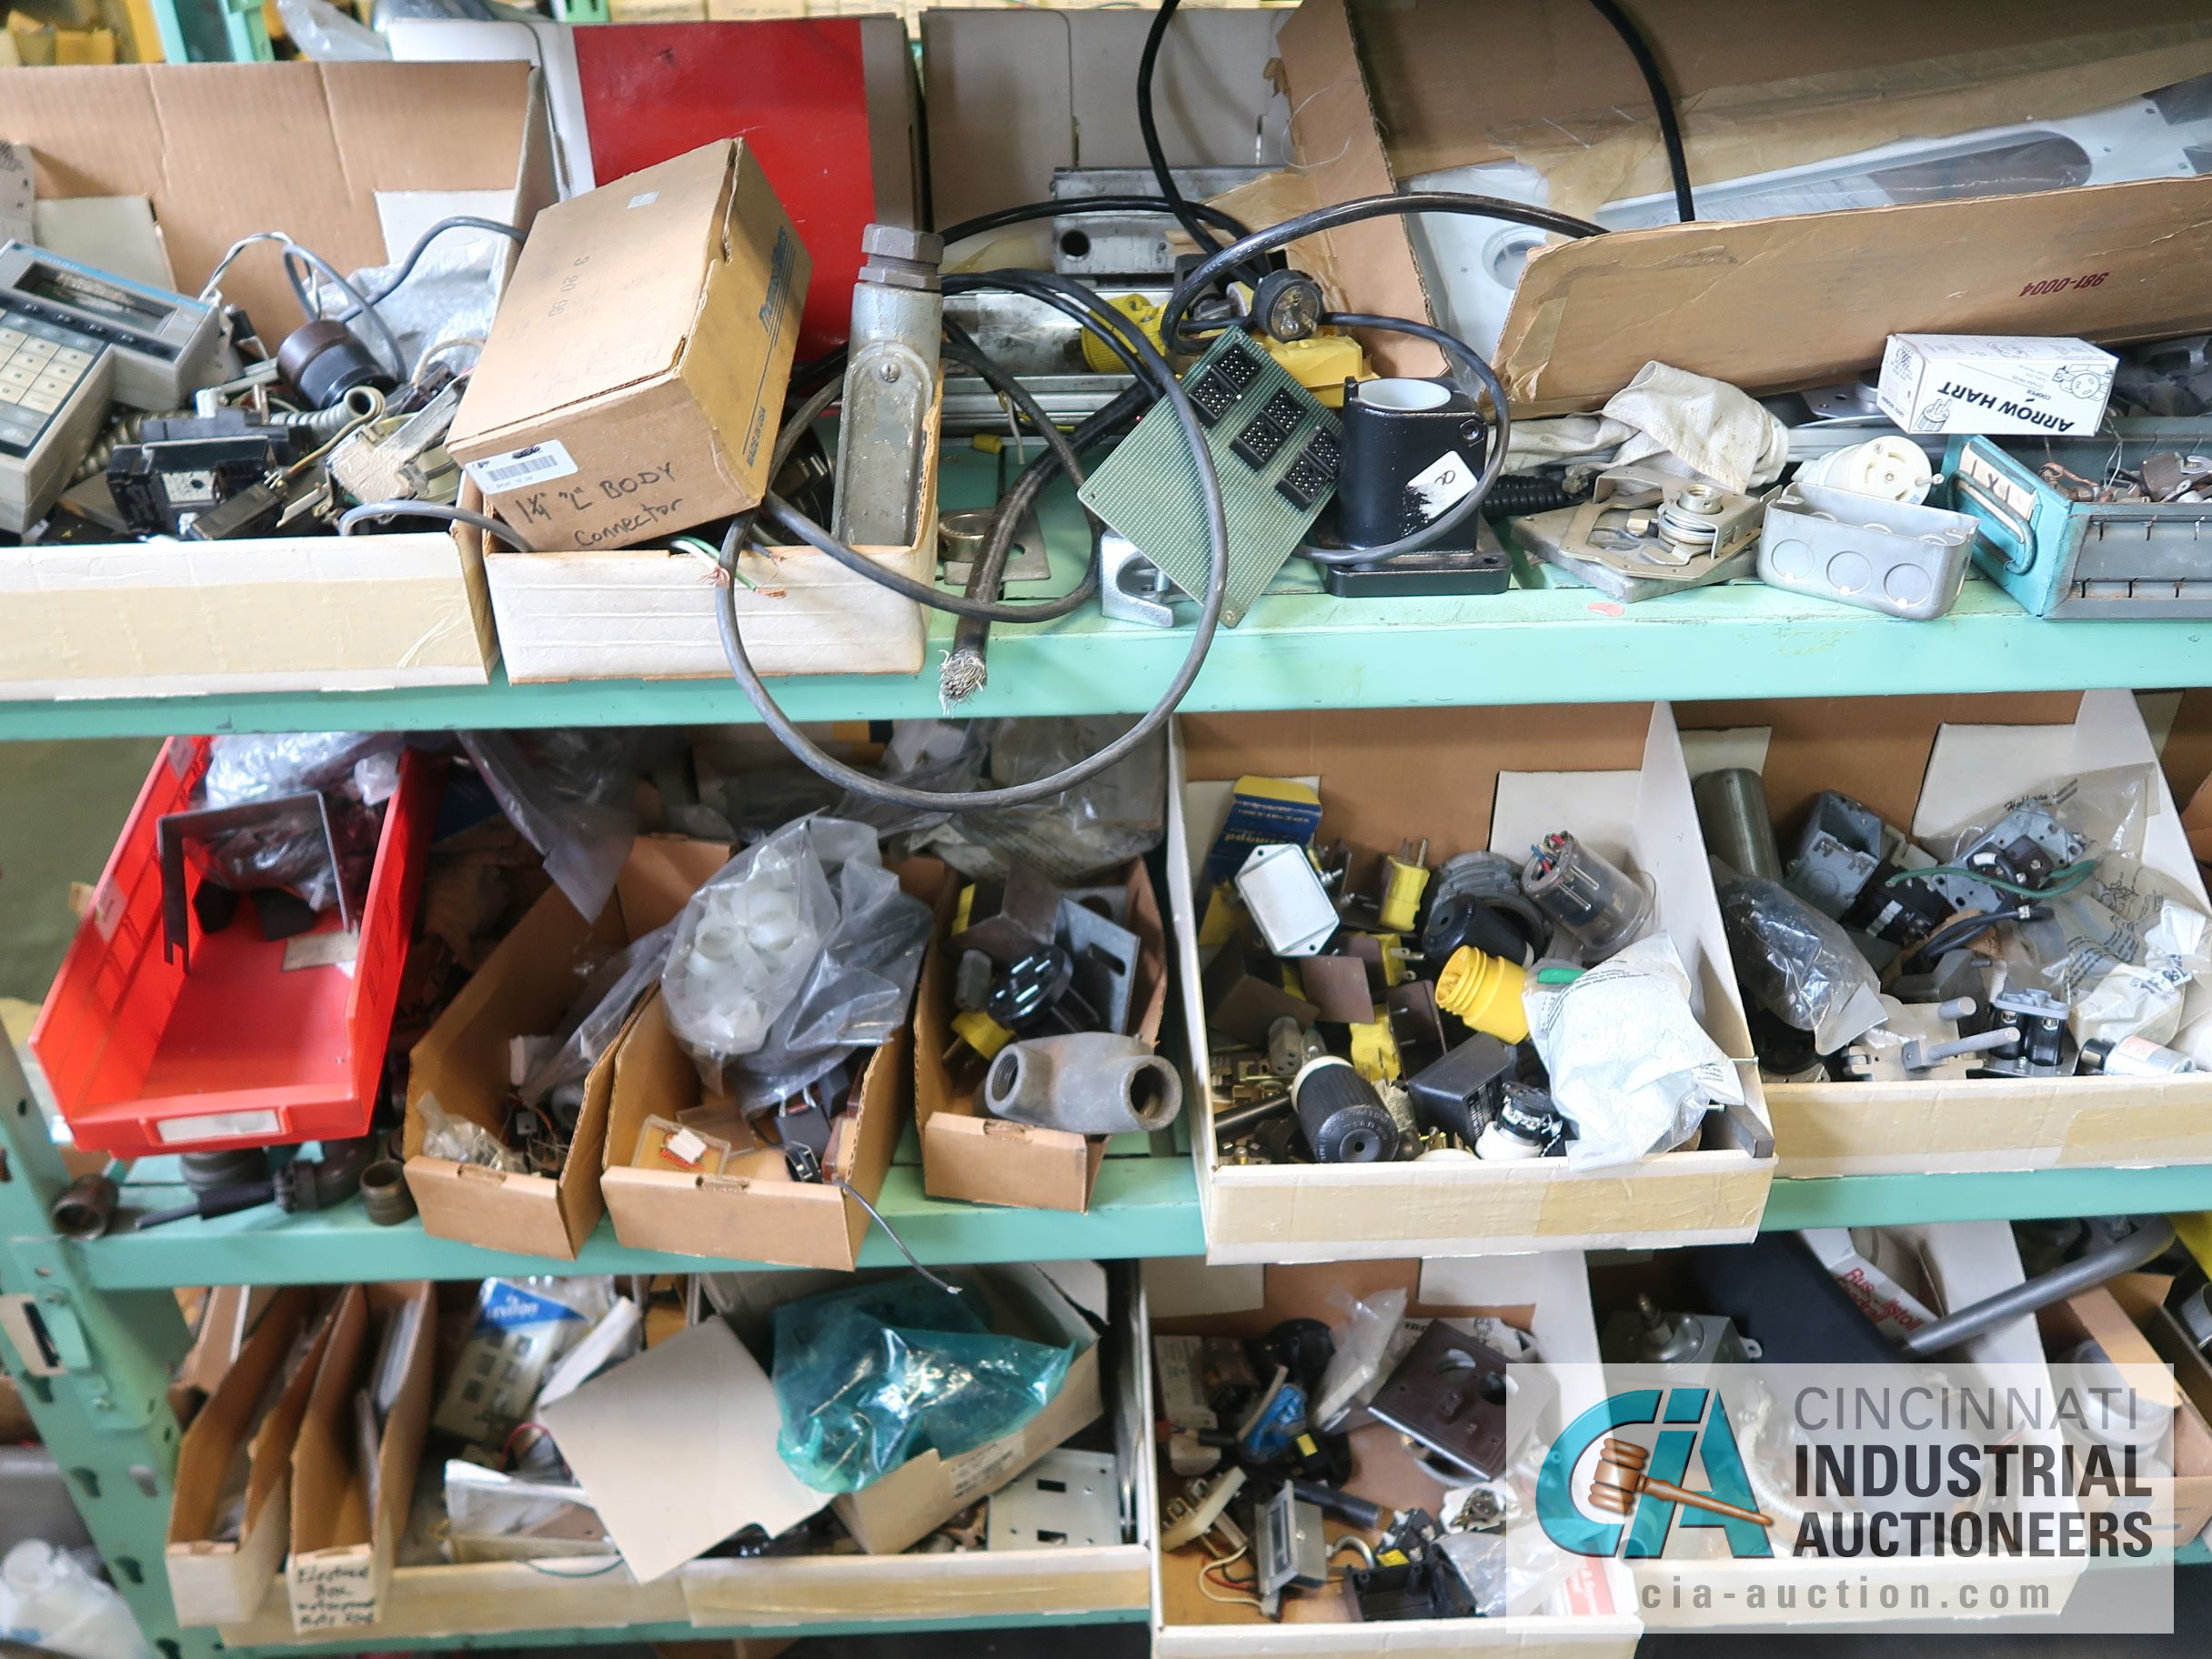 CONTENTS OF (6) RACKS INCLUDING MISCELLANEOUS AUTOMOTIVE PARTS, BREAKS, ROTORS, GASKETS, MOUNTING - Image 20 of 38